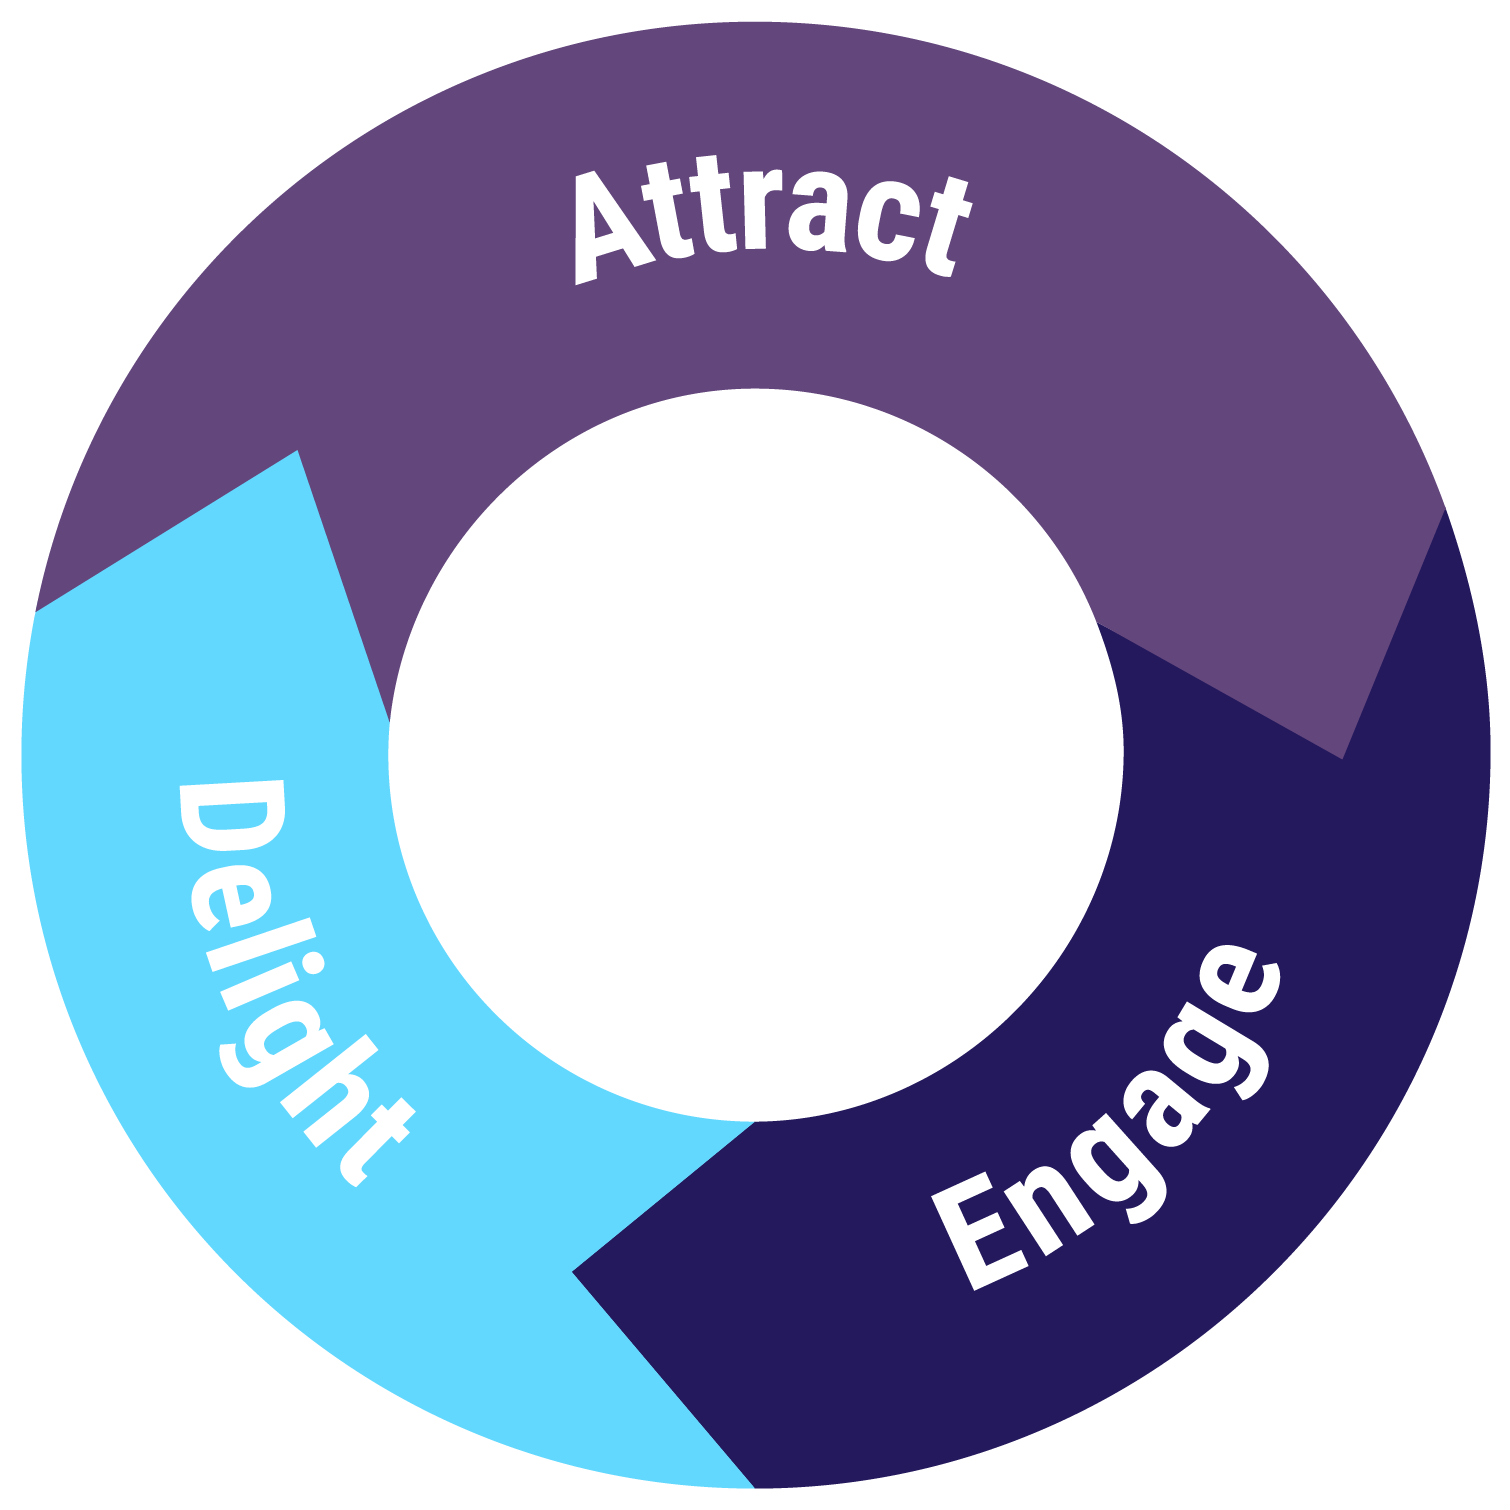 Attract, delight, engage.